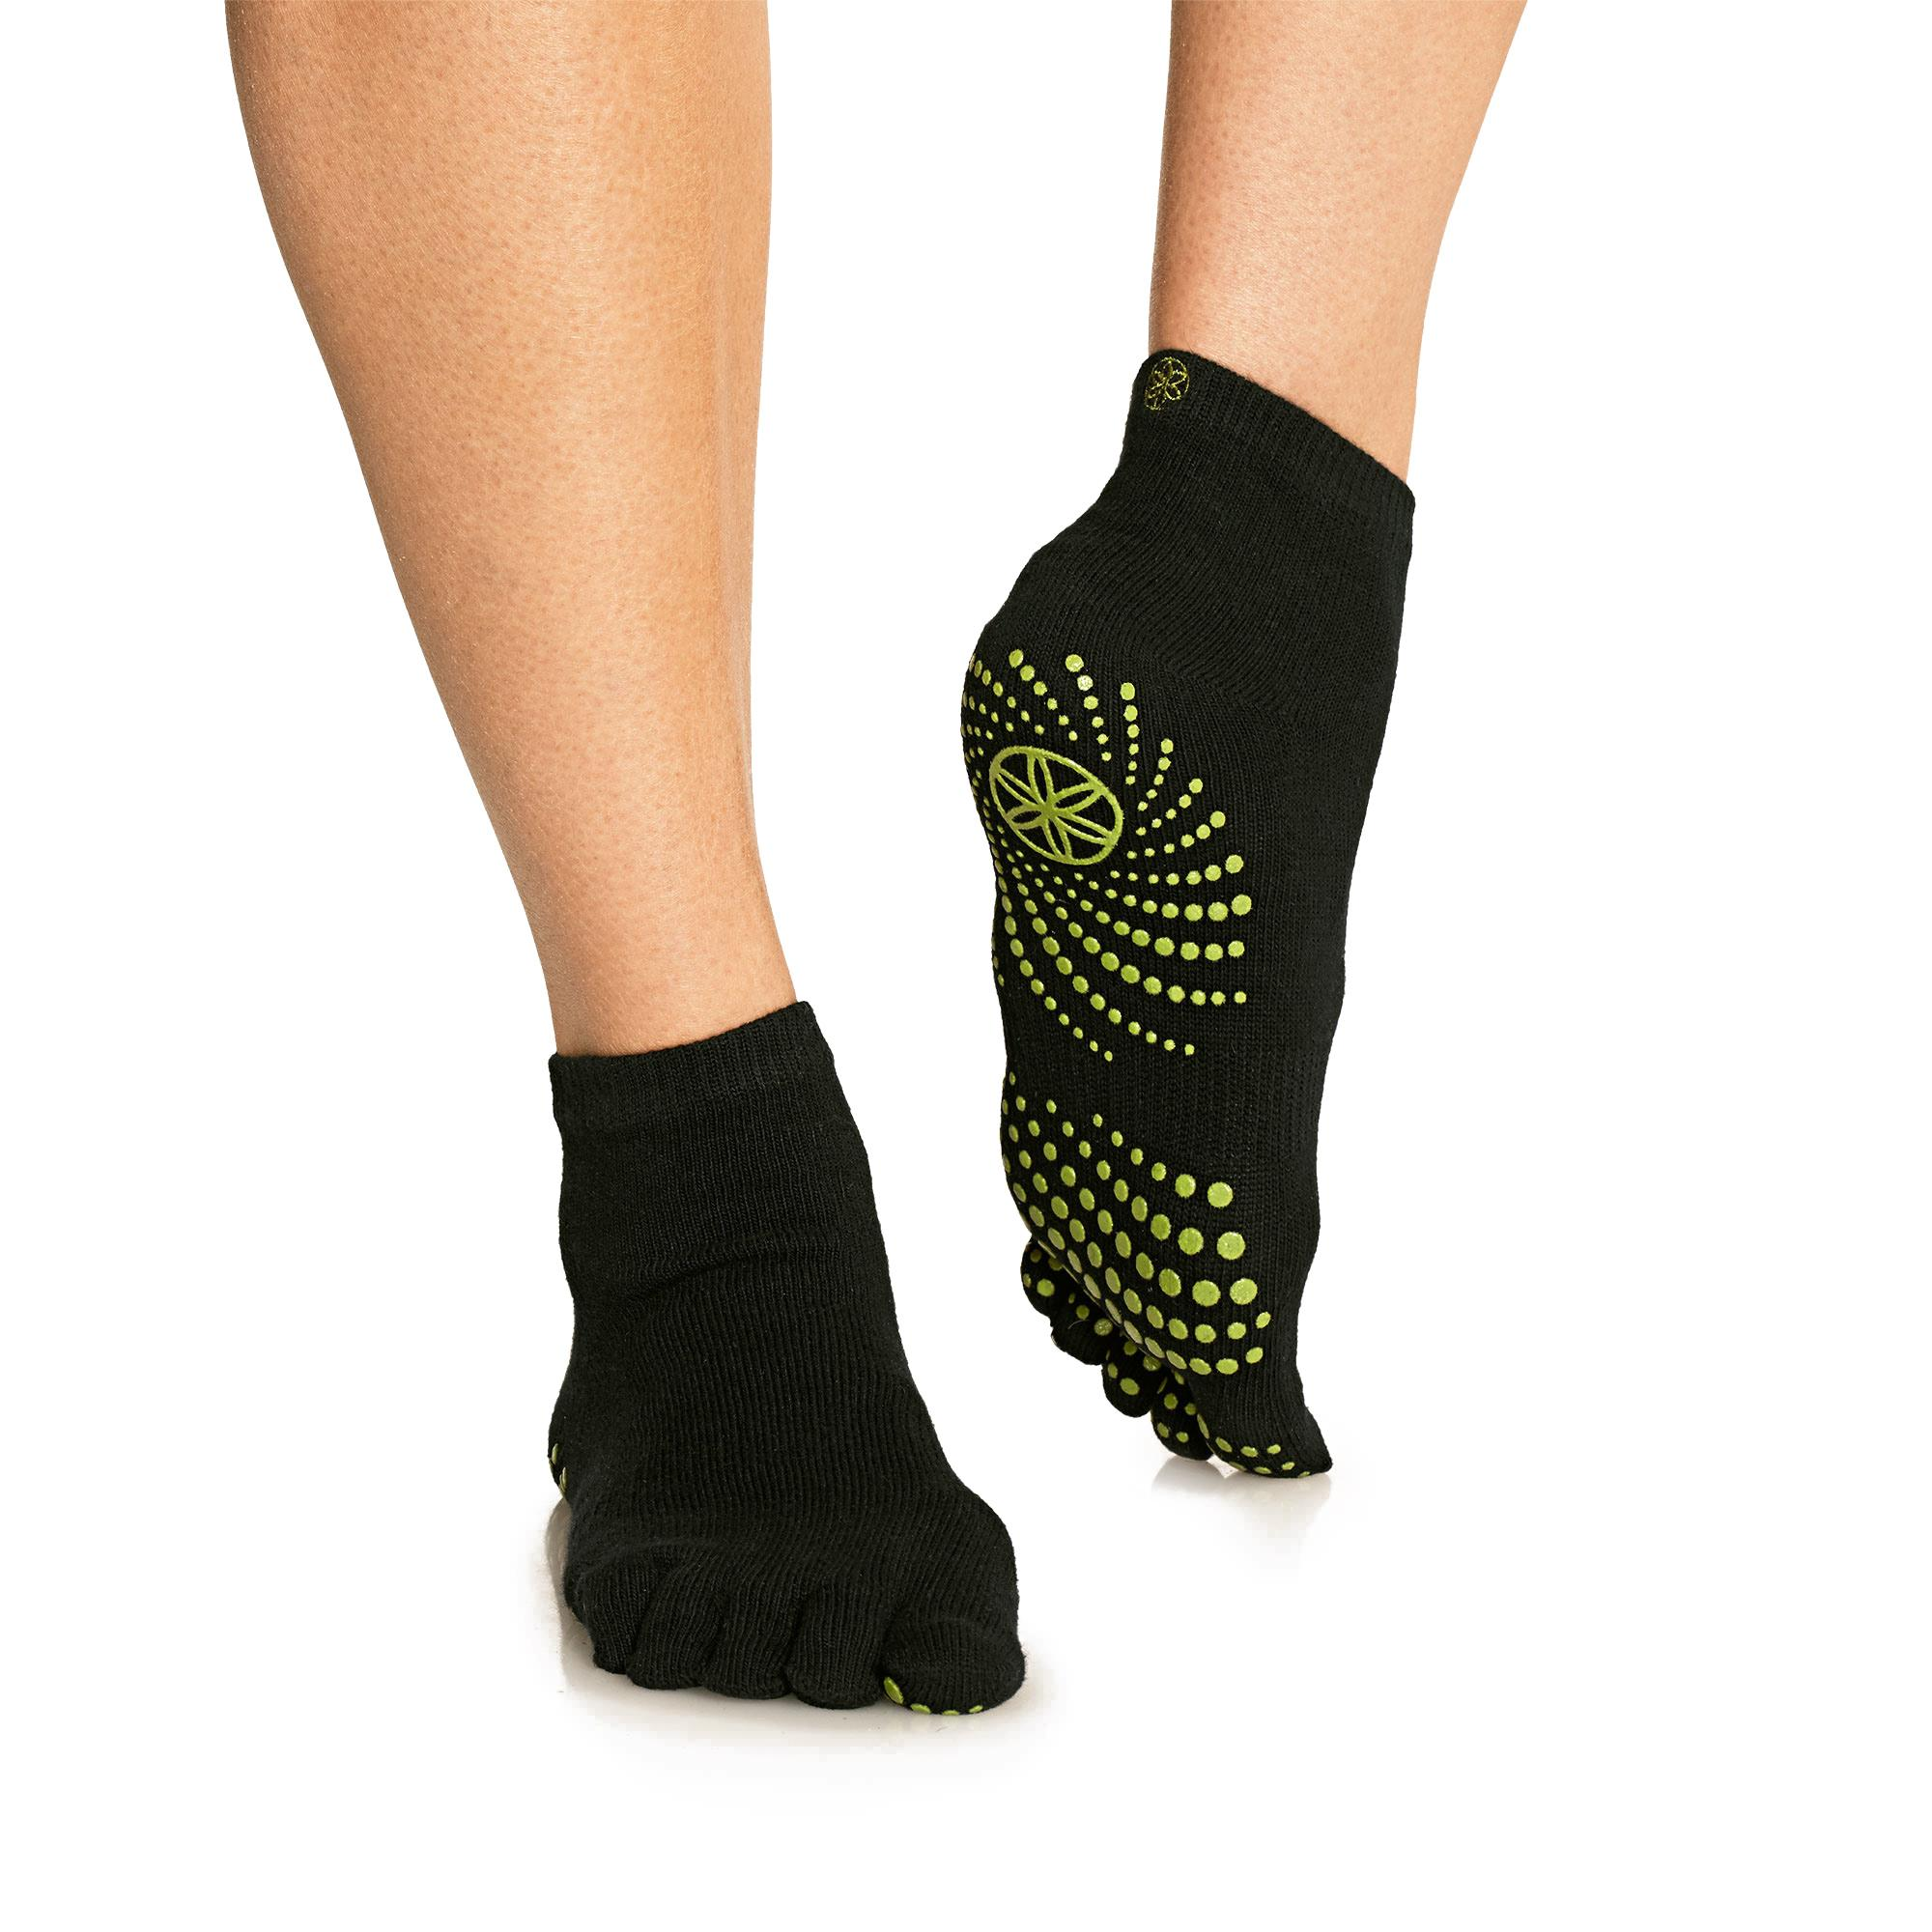 Amazon.com : Gaiam Yoga Socks (Dot Pattern May Vary) : Sports & Outdoors